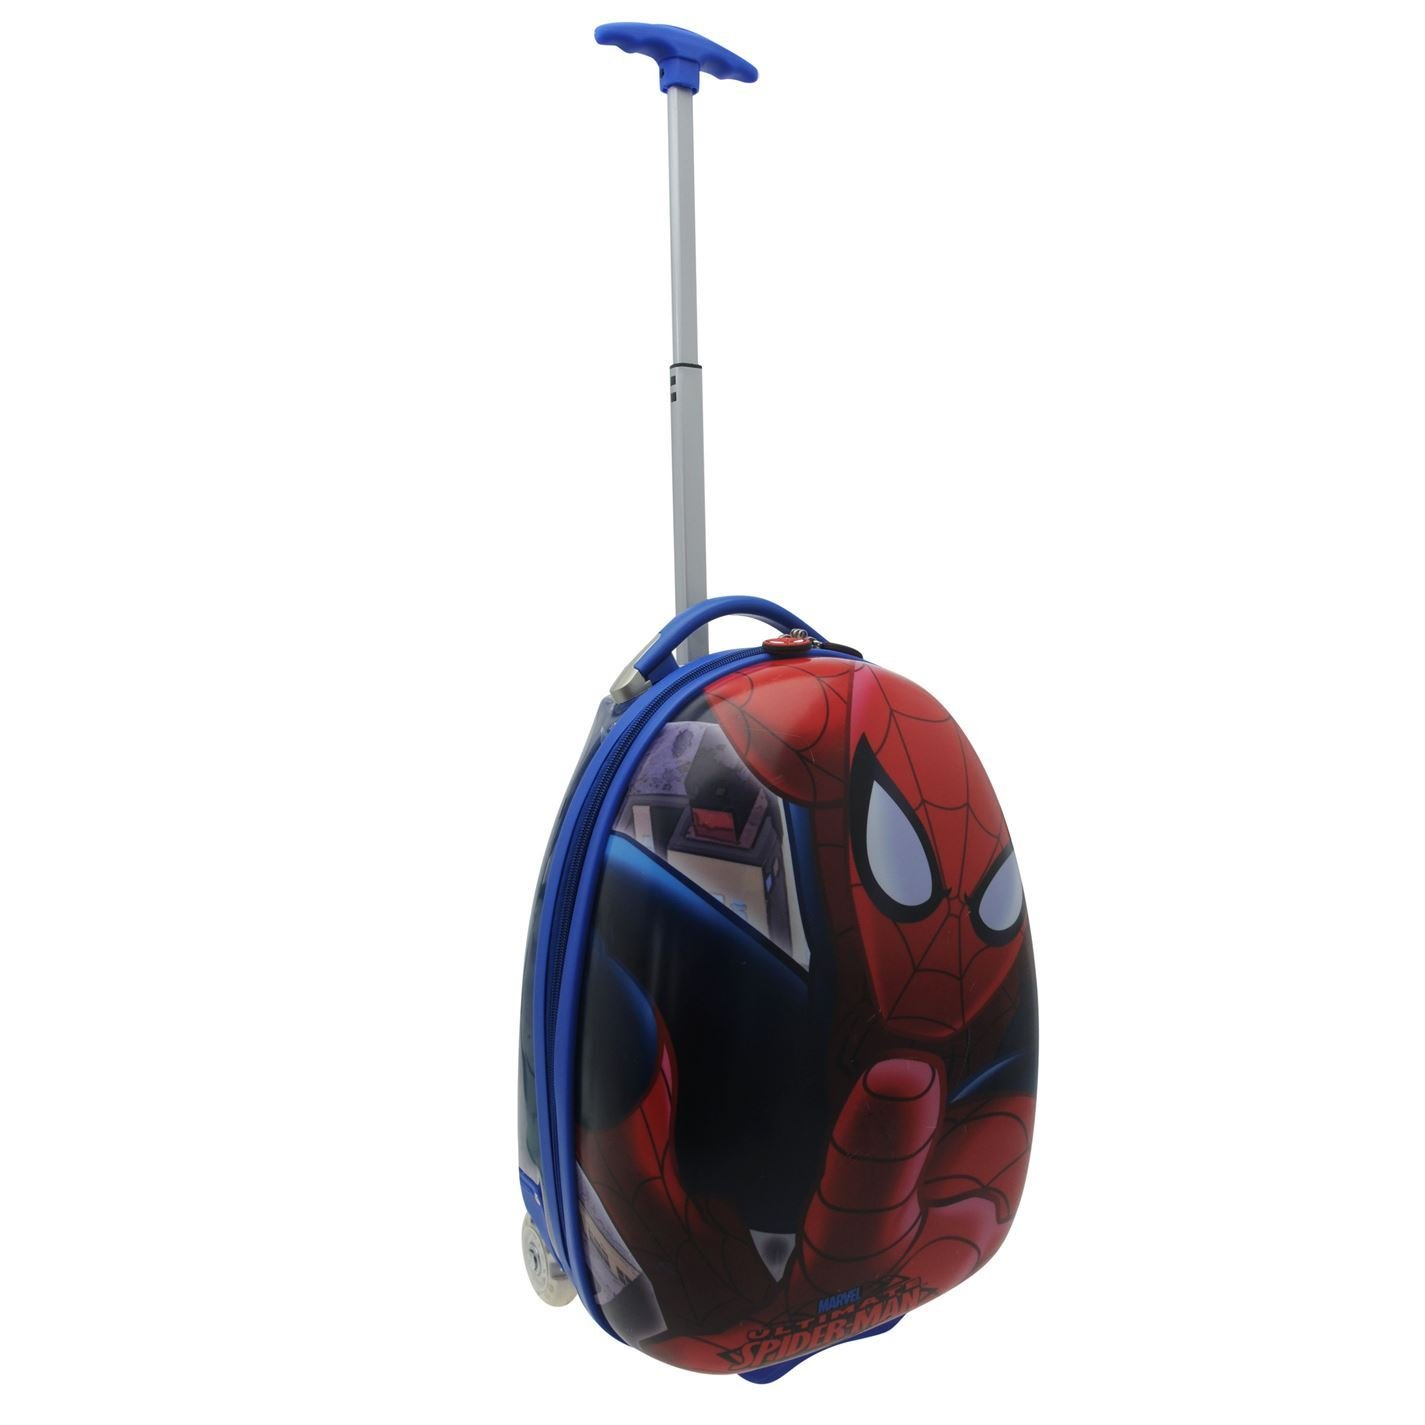 Marvel Spiderman Trolley Suitcase Childs Red/Blue Kids Travel Luggage Bag Case 19in/49cm by Spider-Man